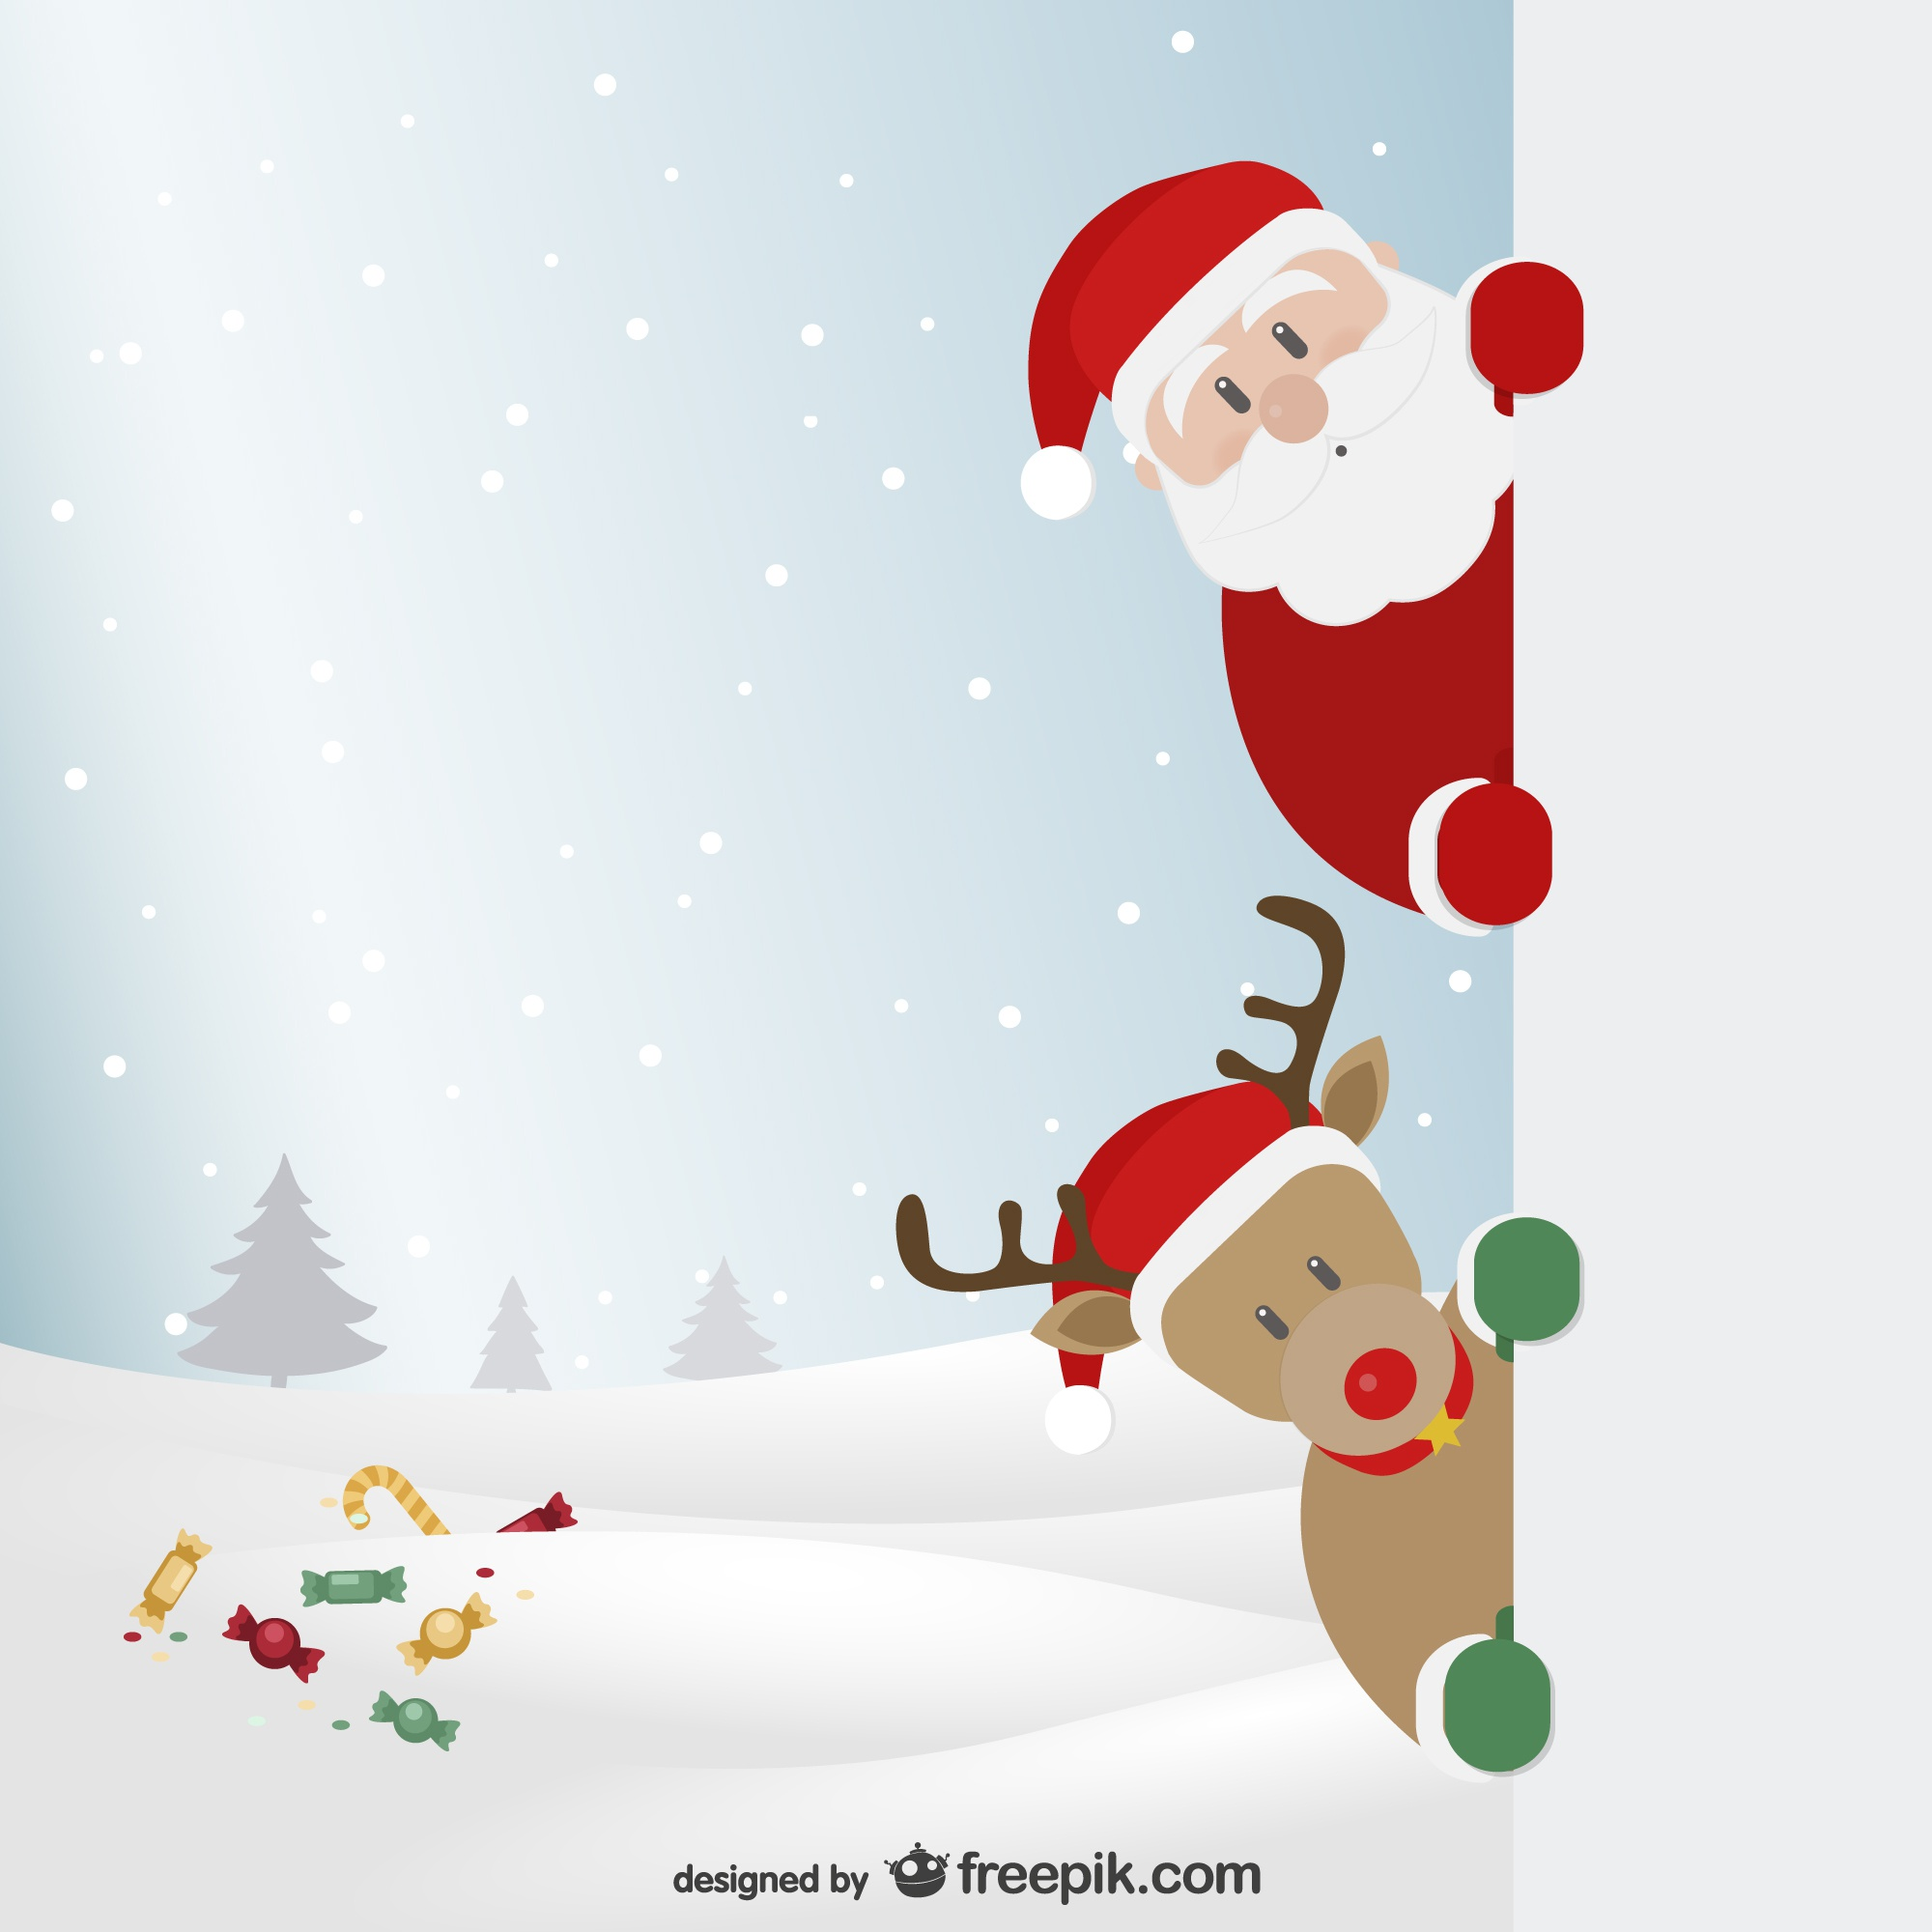 Santa Claus and reindeer with winter landscape